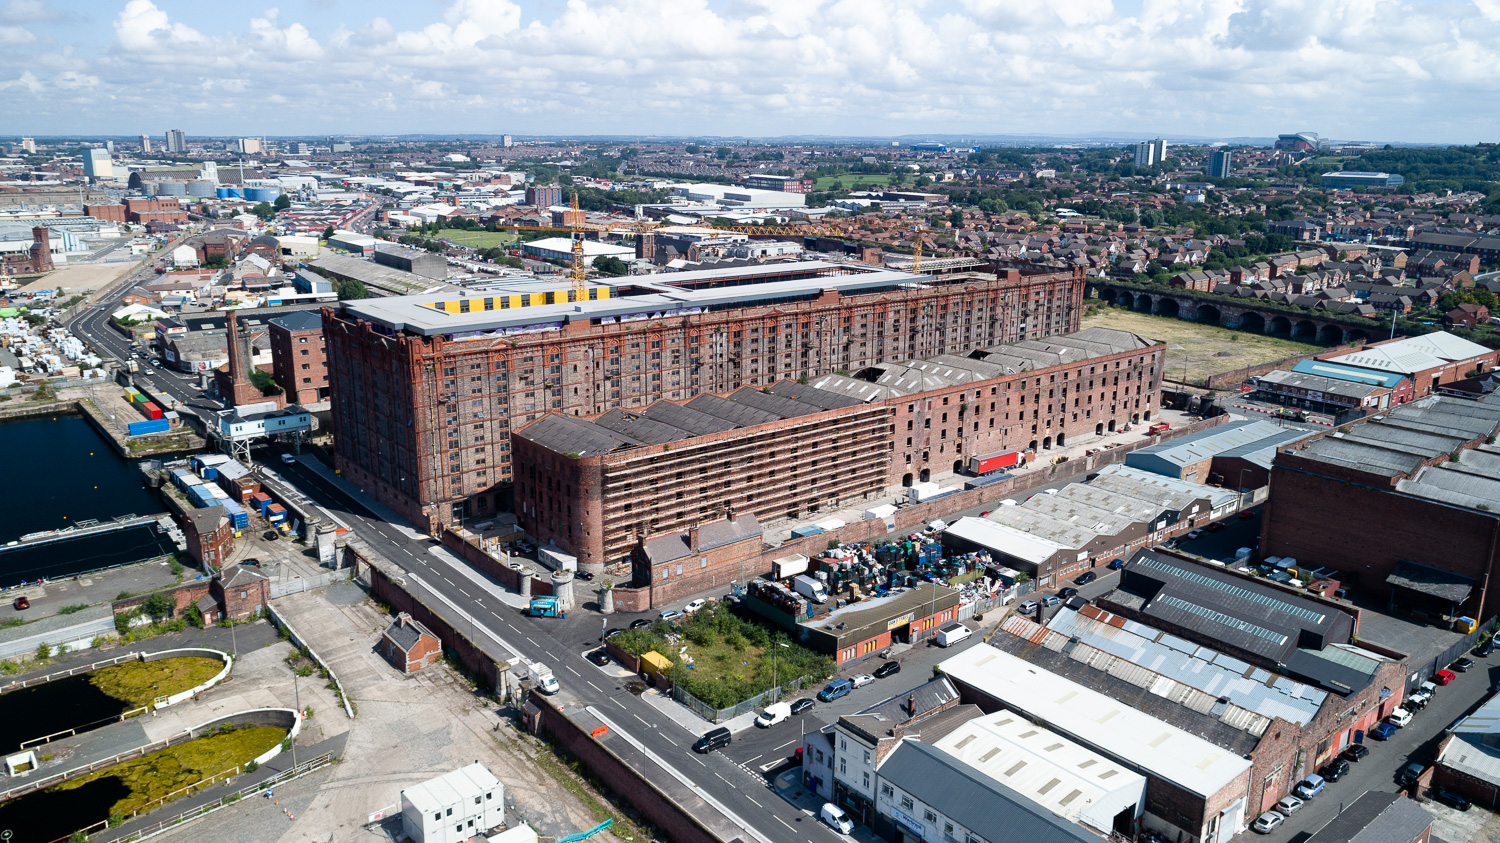 Liverpool Docks_08 08 2019_3_©Matthew Nichol Photography.jpg